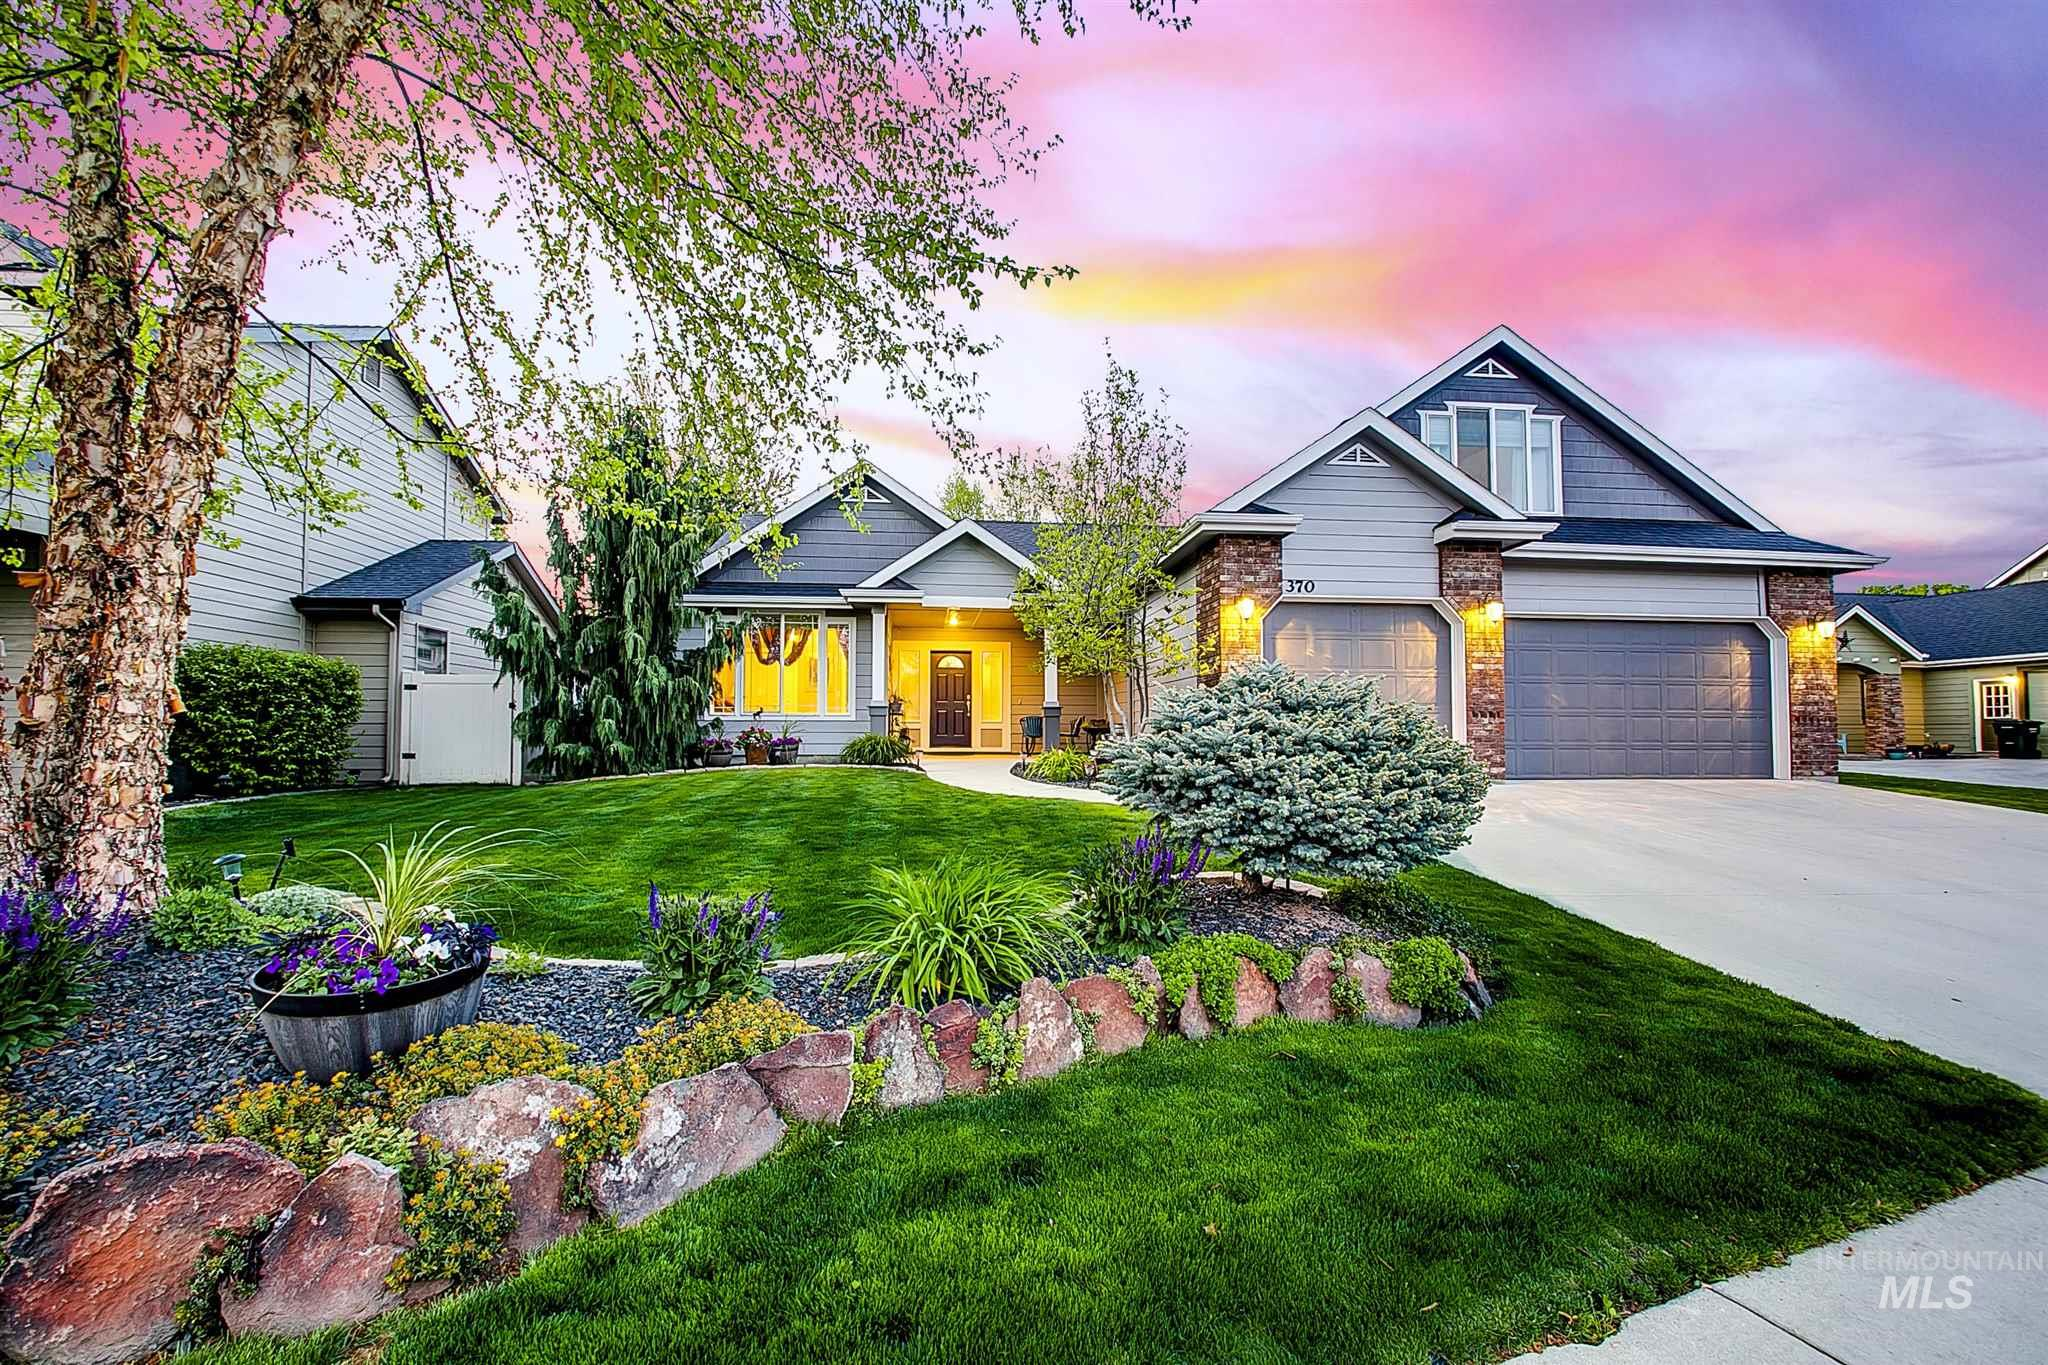 370 E Halpin Property Photo - Meridian, ID real estate listing